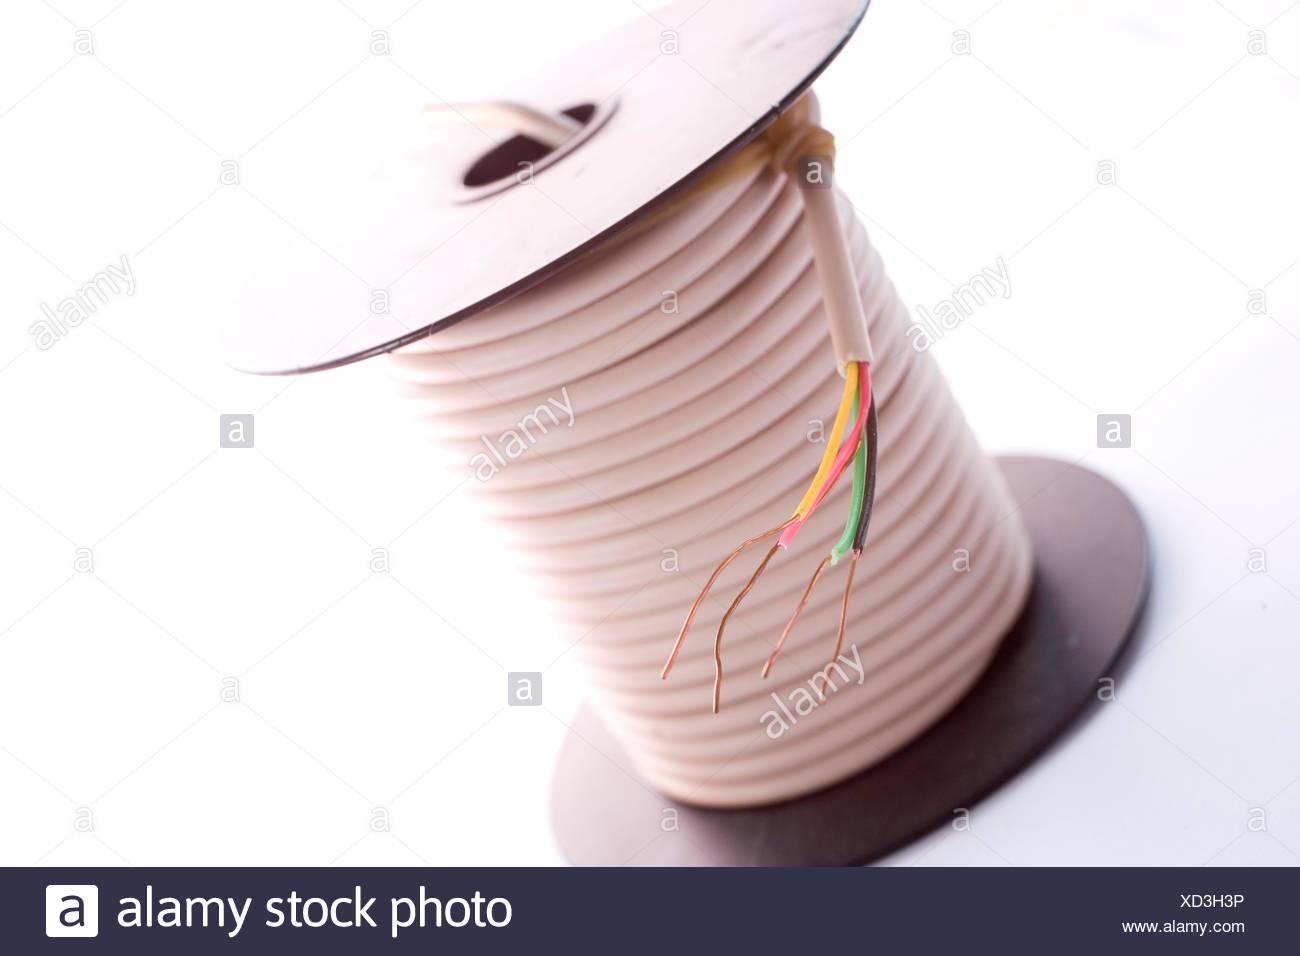 cable on the reel - Stock Image